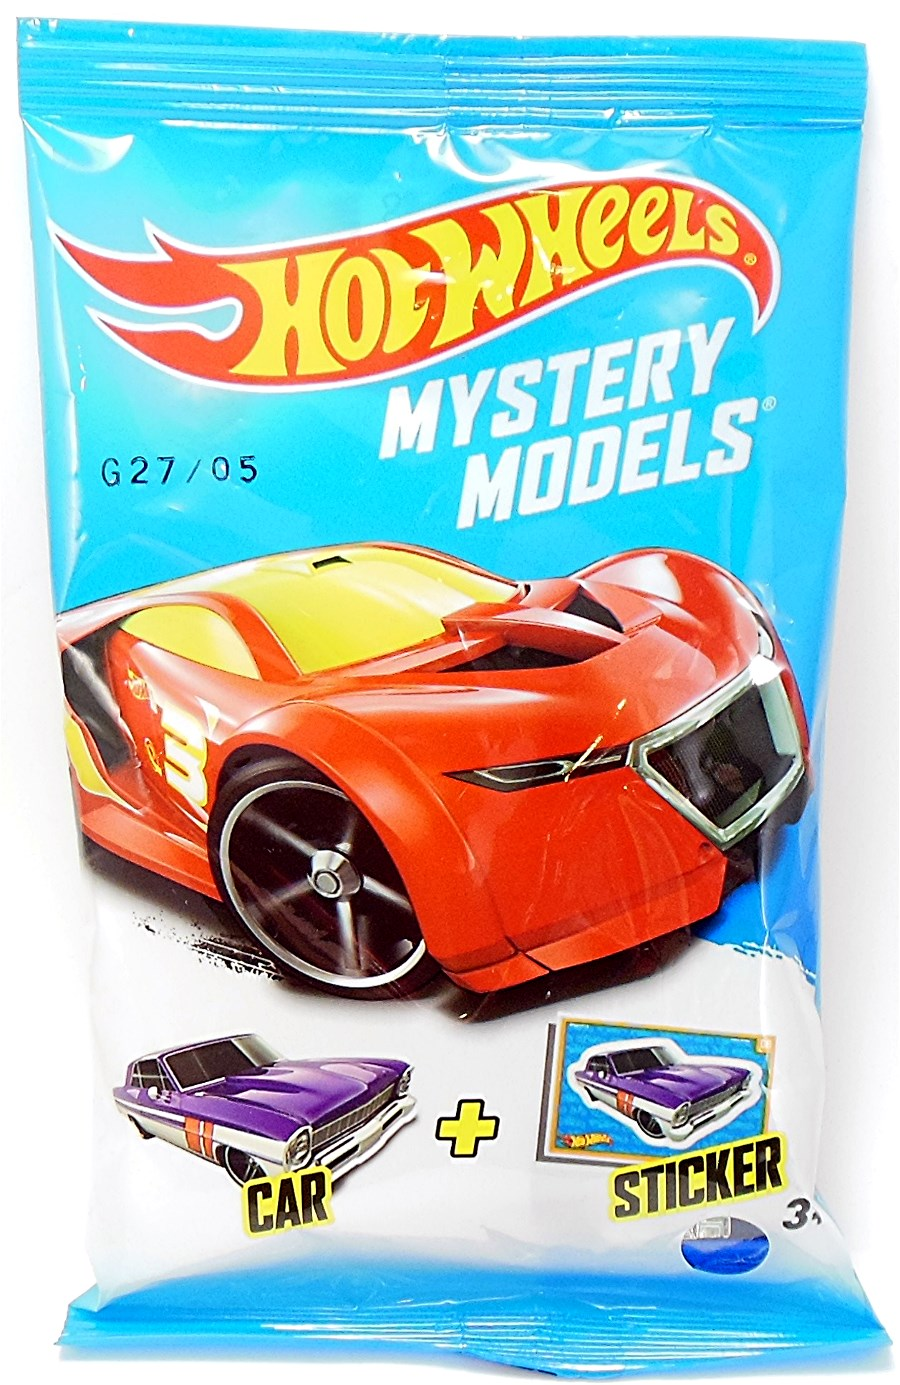 2015 Mystery Models Hot Wheels Newsletter